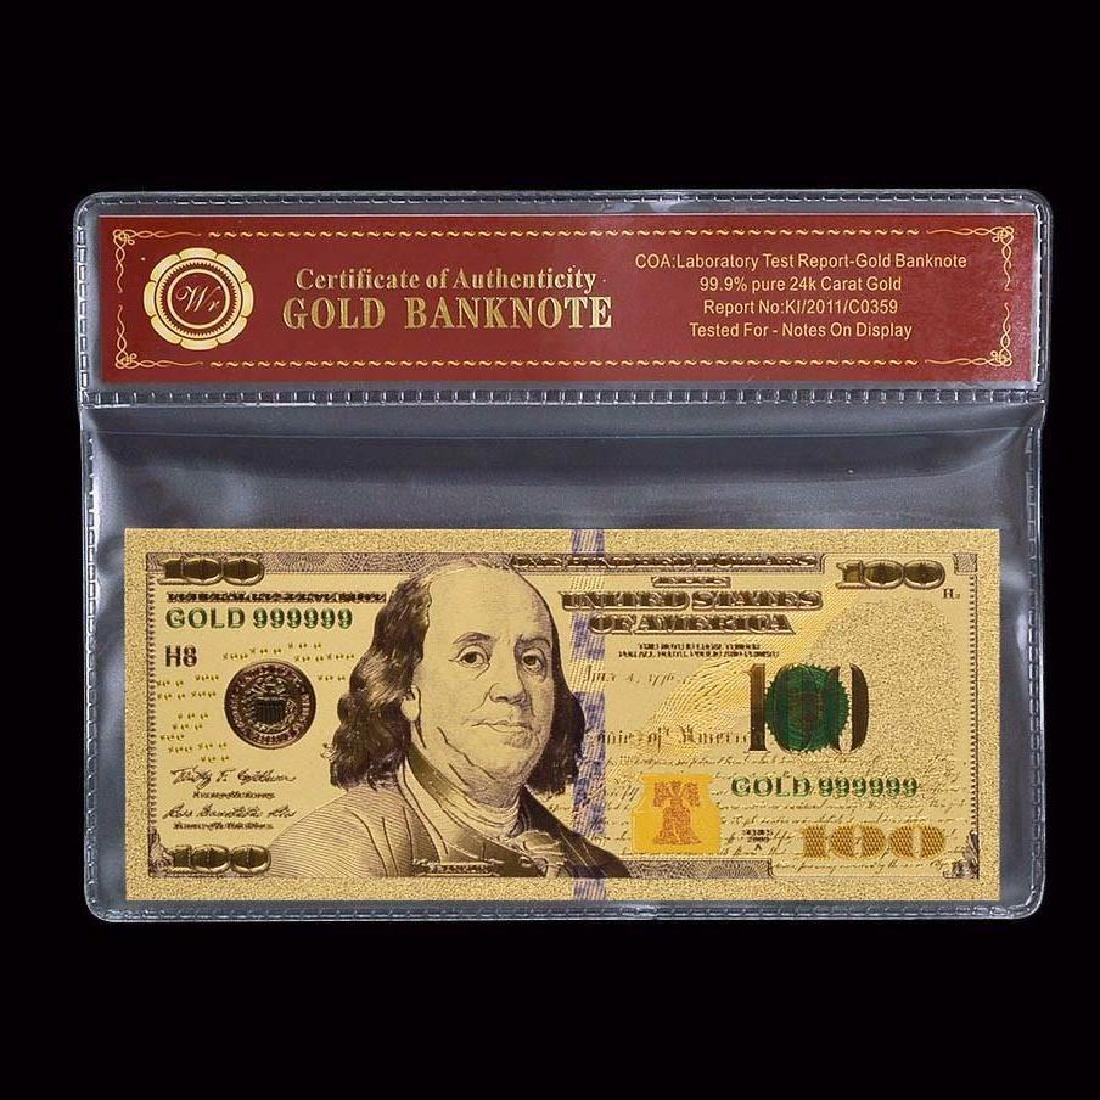 USA $100 24K Gold Clad Banknote